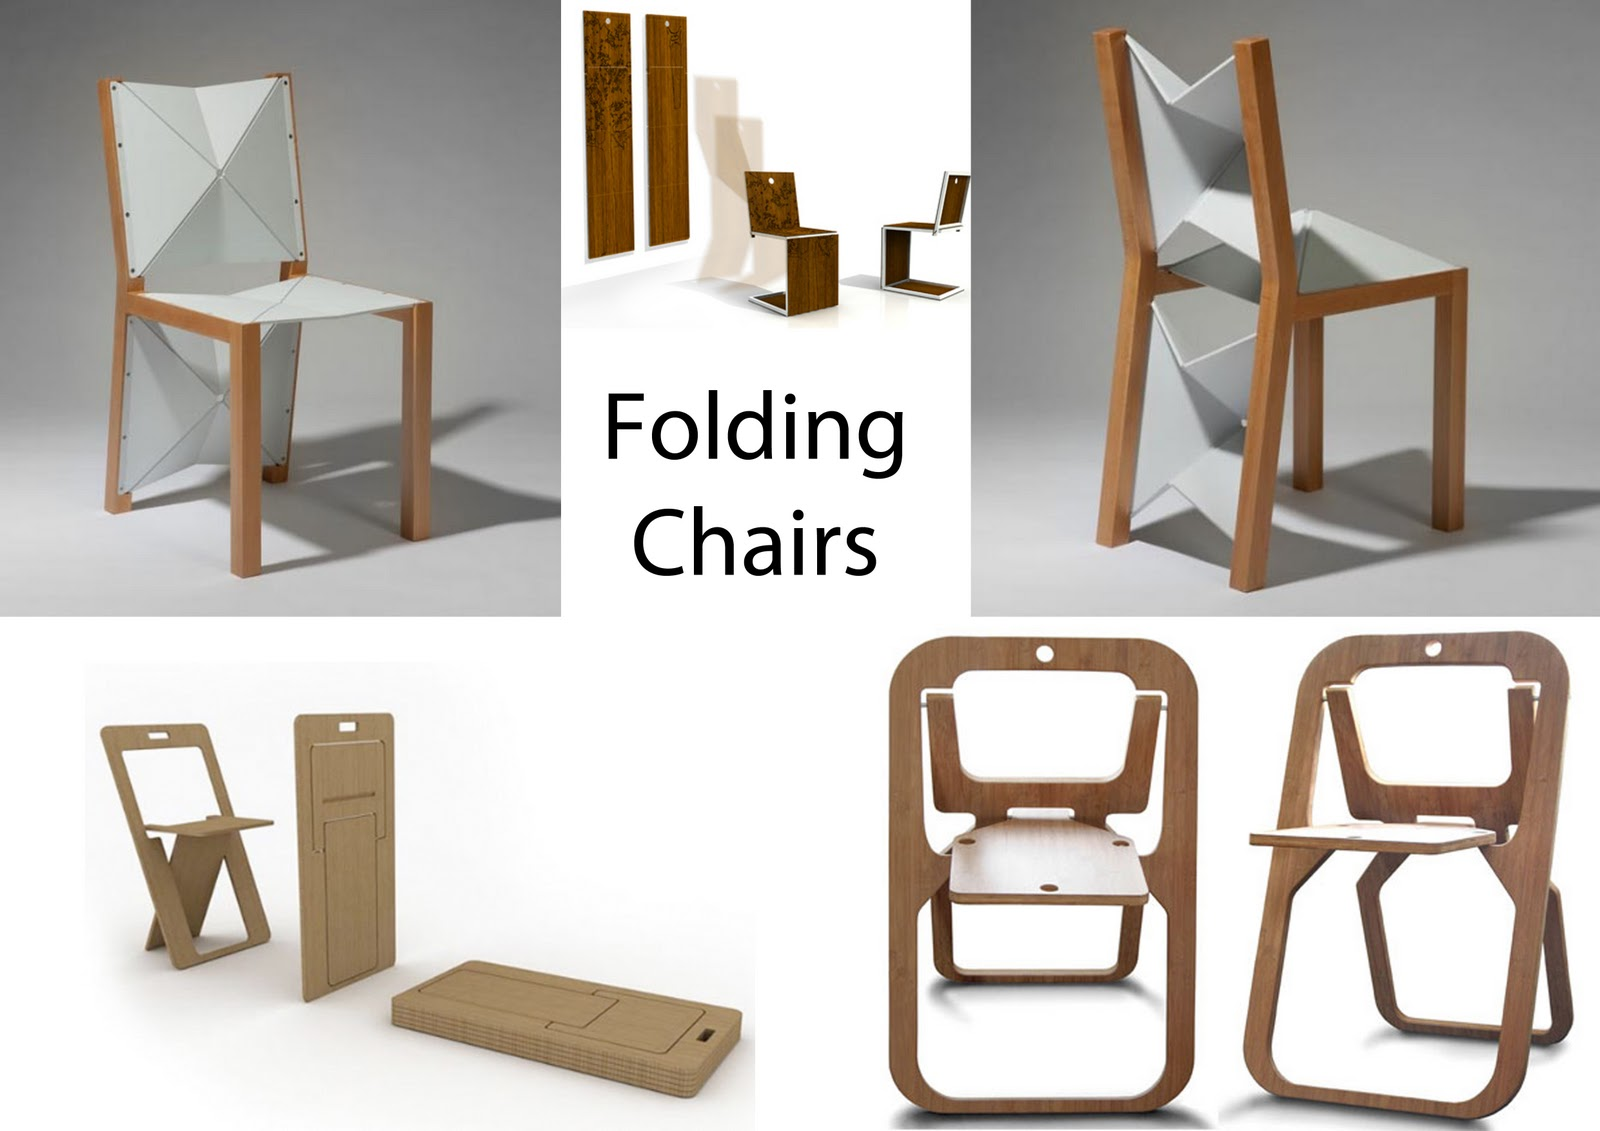 Tara Britton Chair: Folding Chairs - photo#14